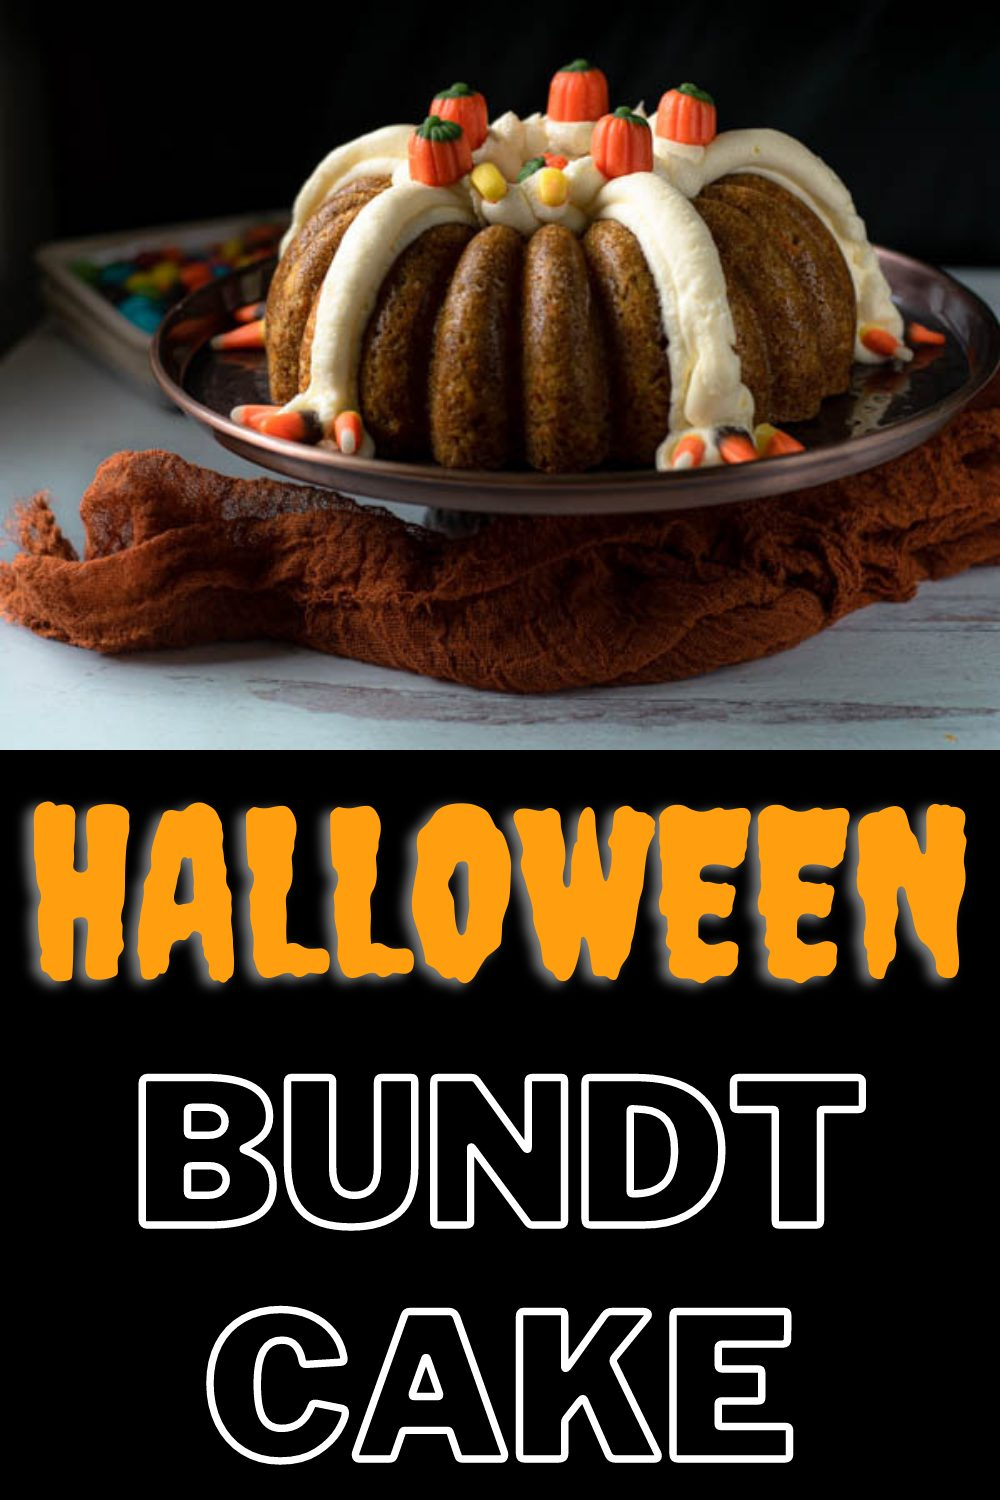 This Halloween Bundt Cake is loaded with colorful candies and yummy cream cheese frosting inside out, making it the perfect Halloween treat. Full recipe and tips available on our site!! #halloweenbundtcake #halloweenideas #halloweenrecipes #fallrecipes #nymelrosefamily via @jennymelrose